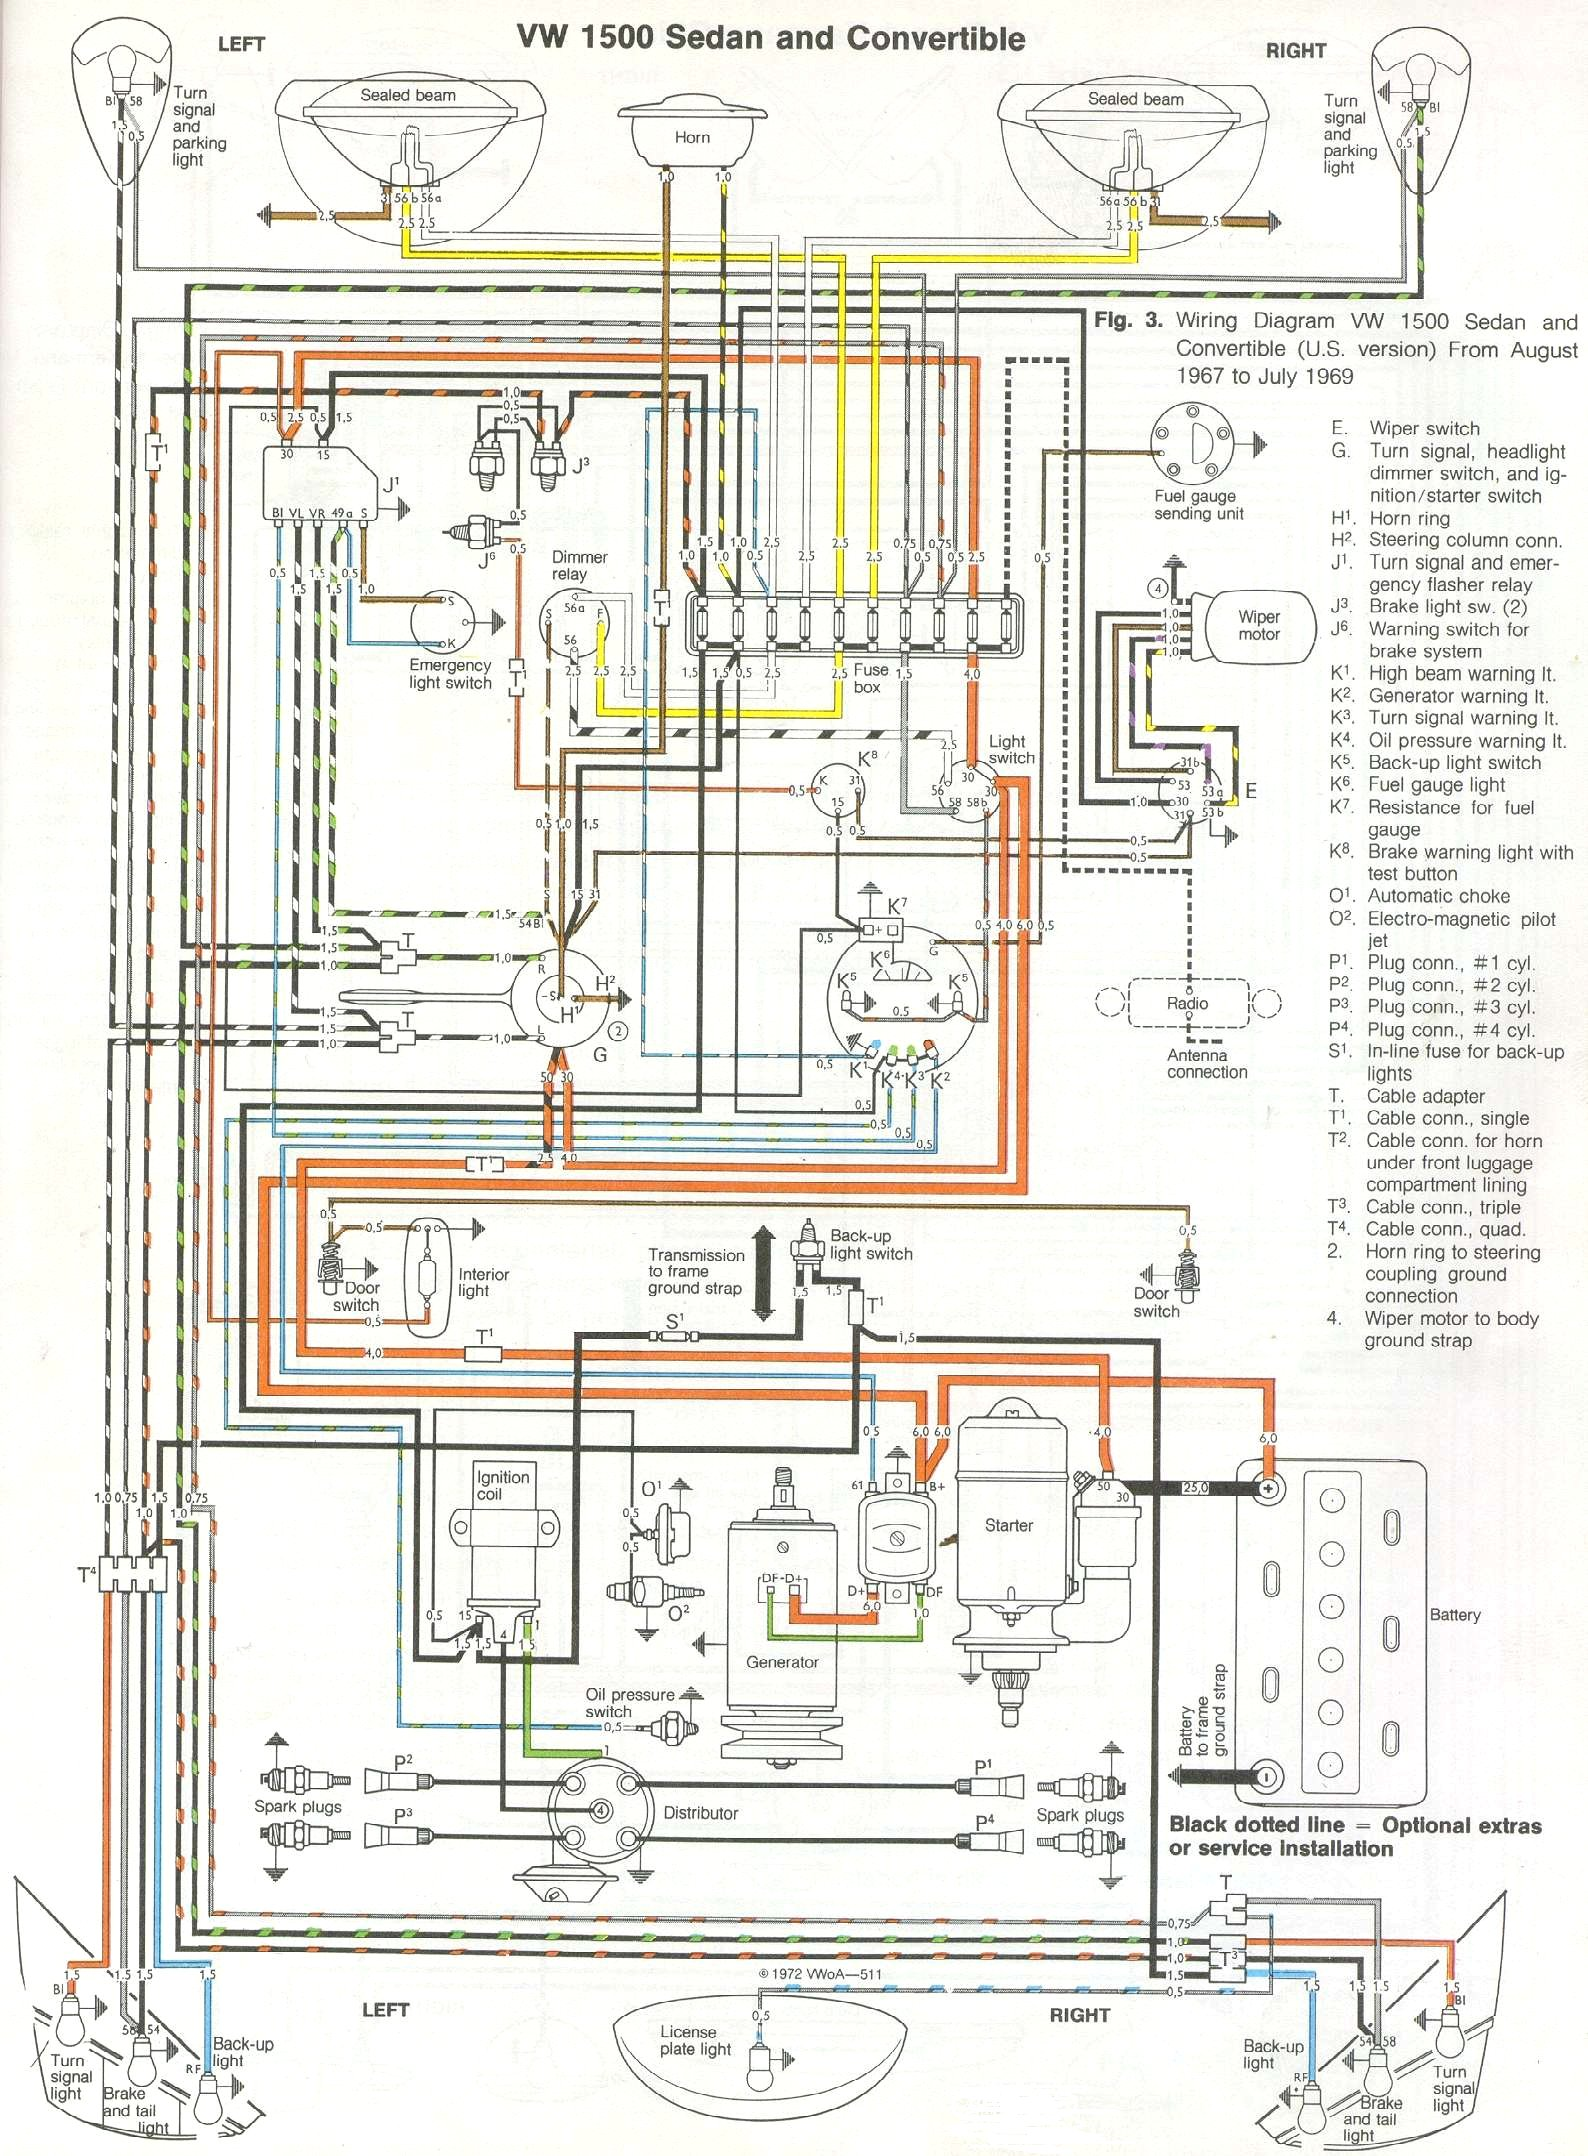 bug_6869 vw wiring harness diagram cj7 wiring harness diagram \u2022 wiring 1971 vw bus wiring diagram at mr168.co